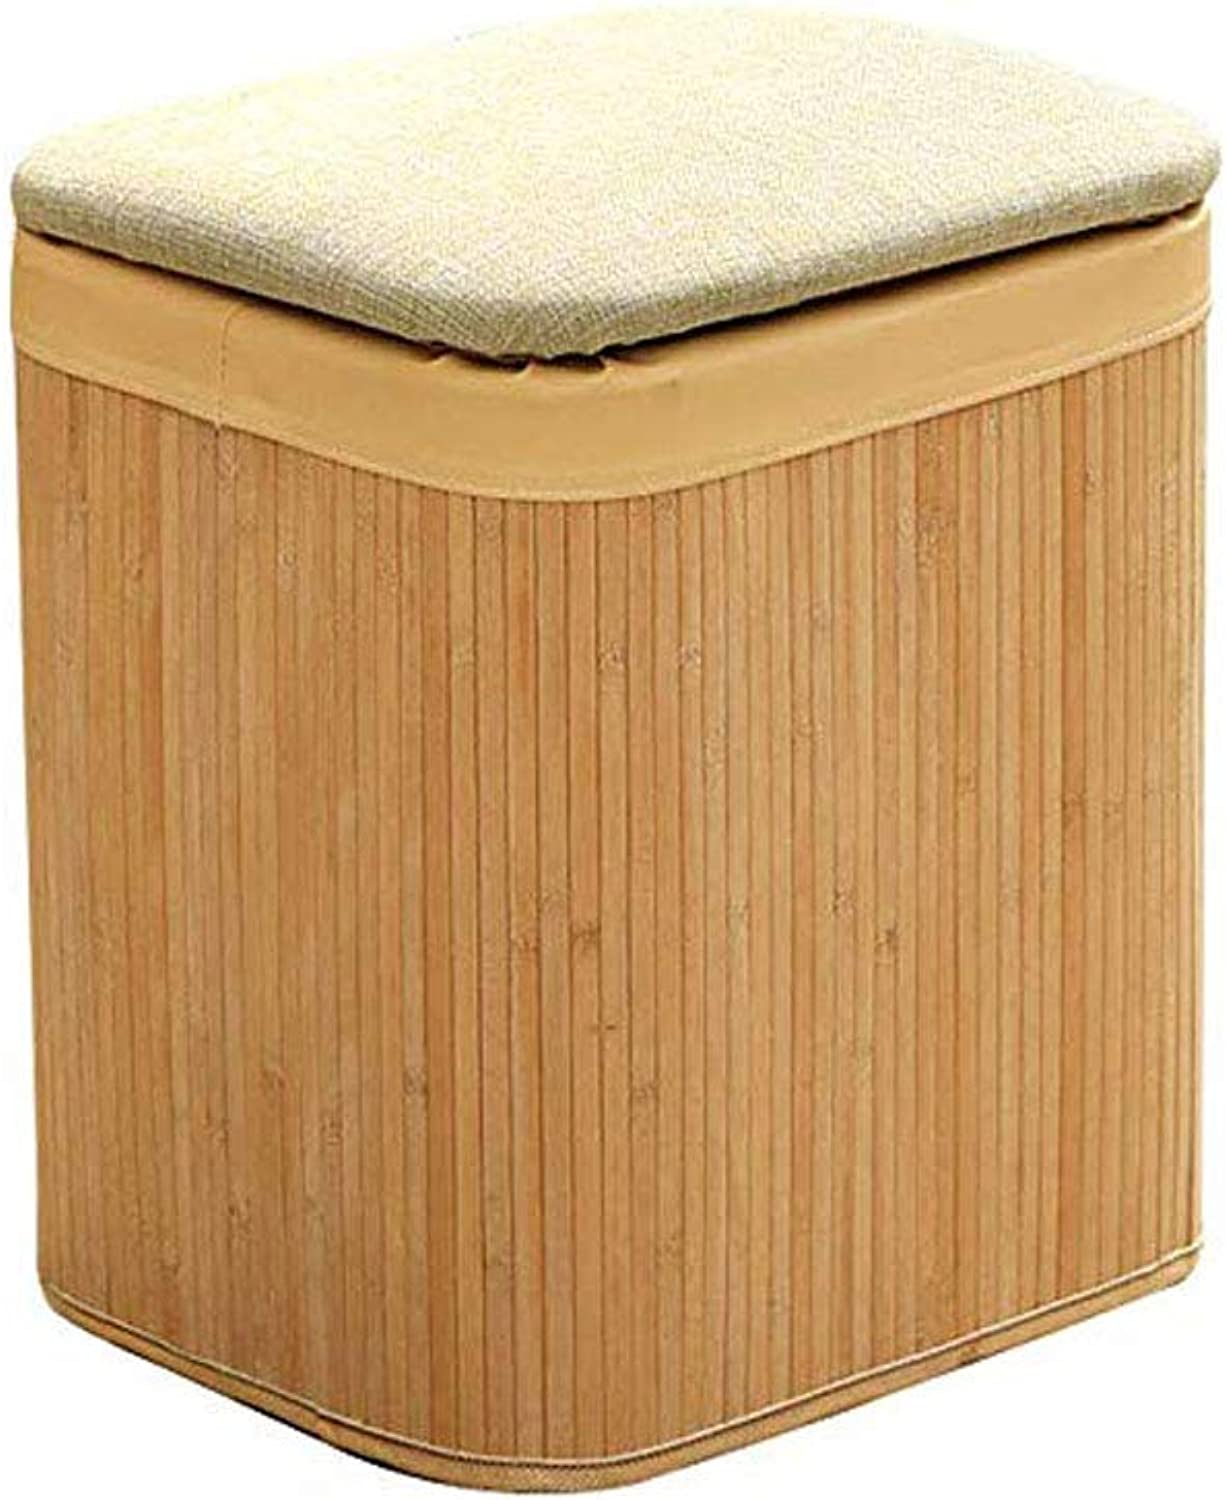 Footstool, Multi-Function Storage Stool Storage Stool Solid Wood Home Osman Sofa Bench shoes Bench (Size   B)